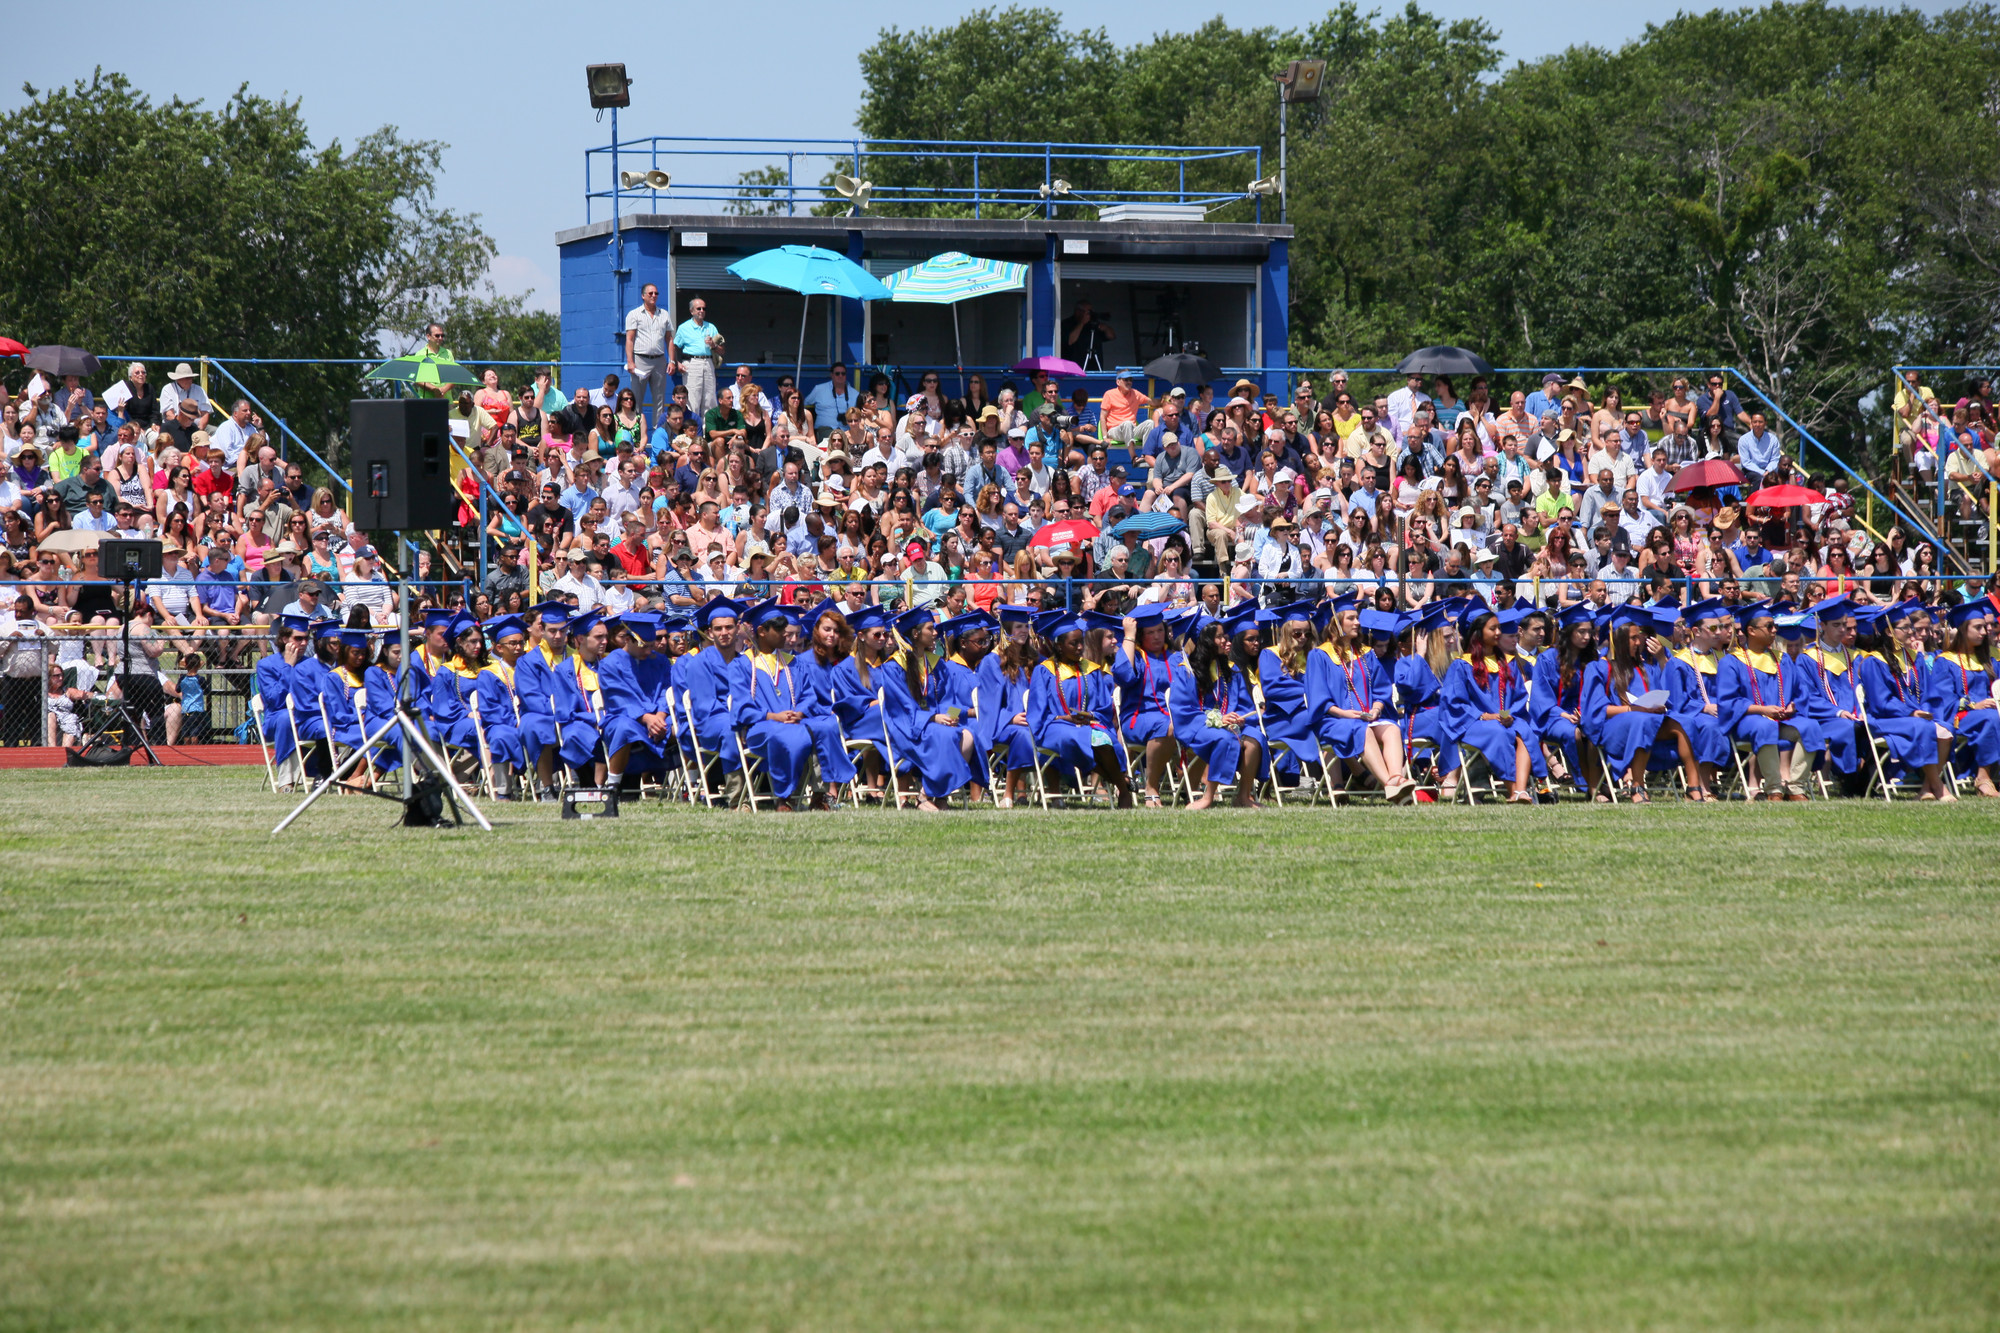 The East Meadow graduation took place on the John Barbour Memorial Field outside of the school.